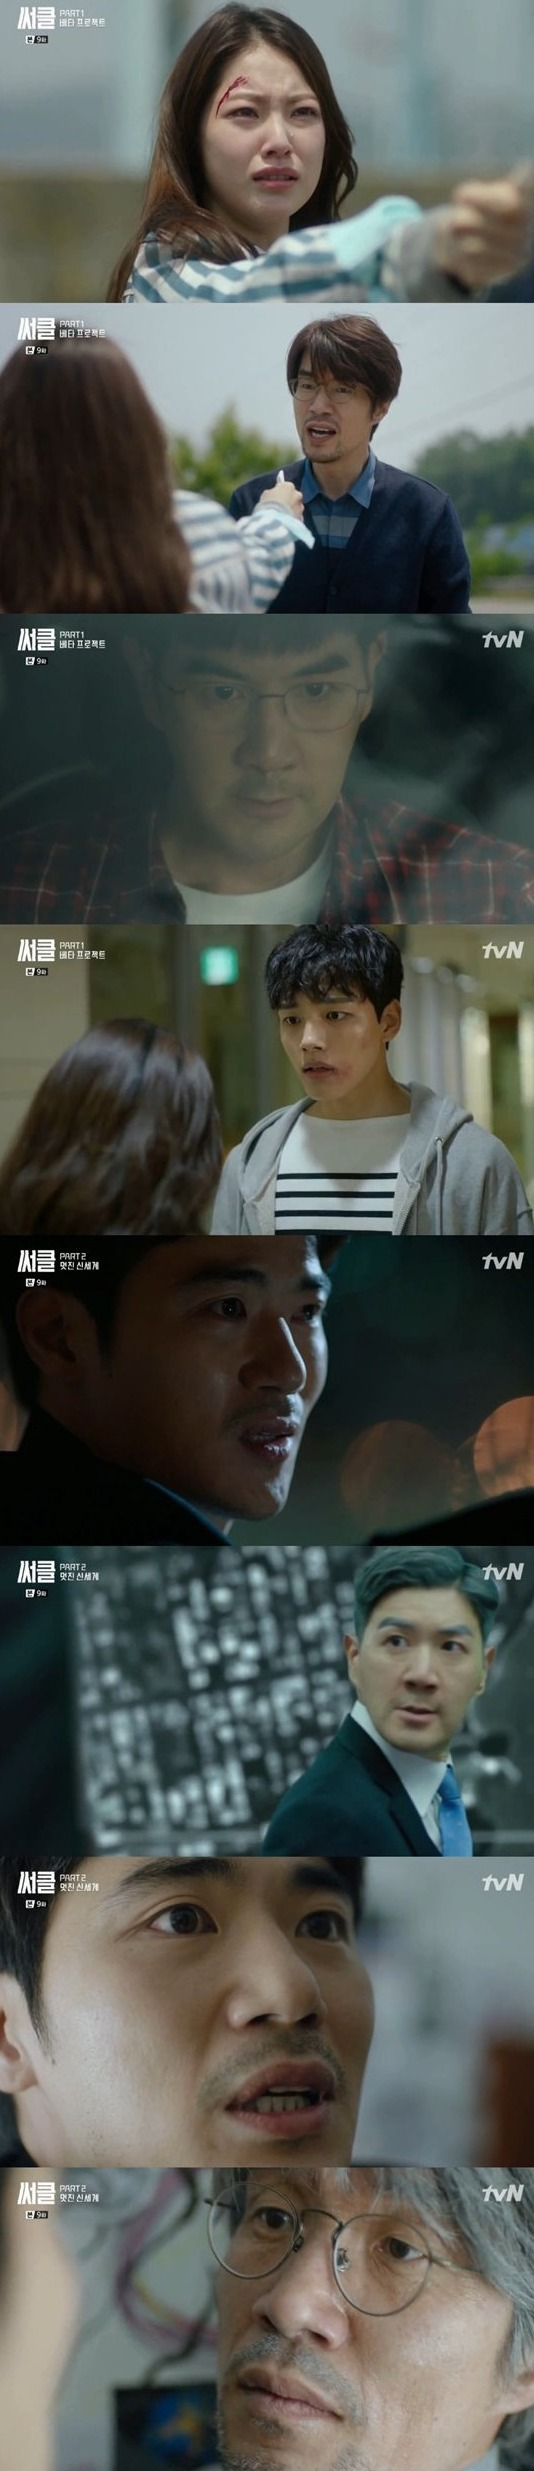 [Spoiler] Added episode 9 captures for the Korean drama 'Circle'